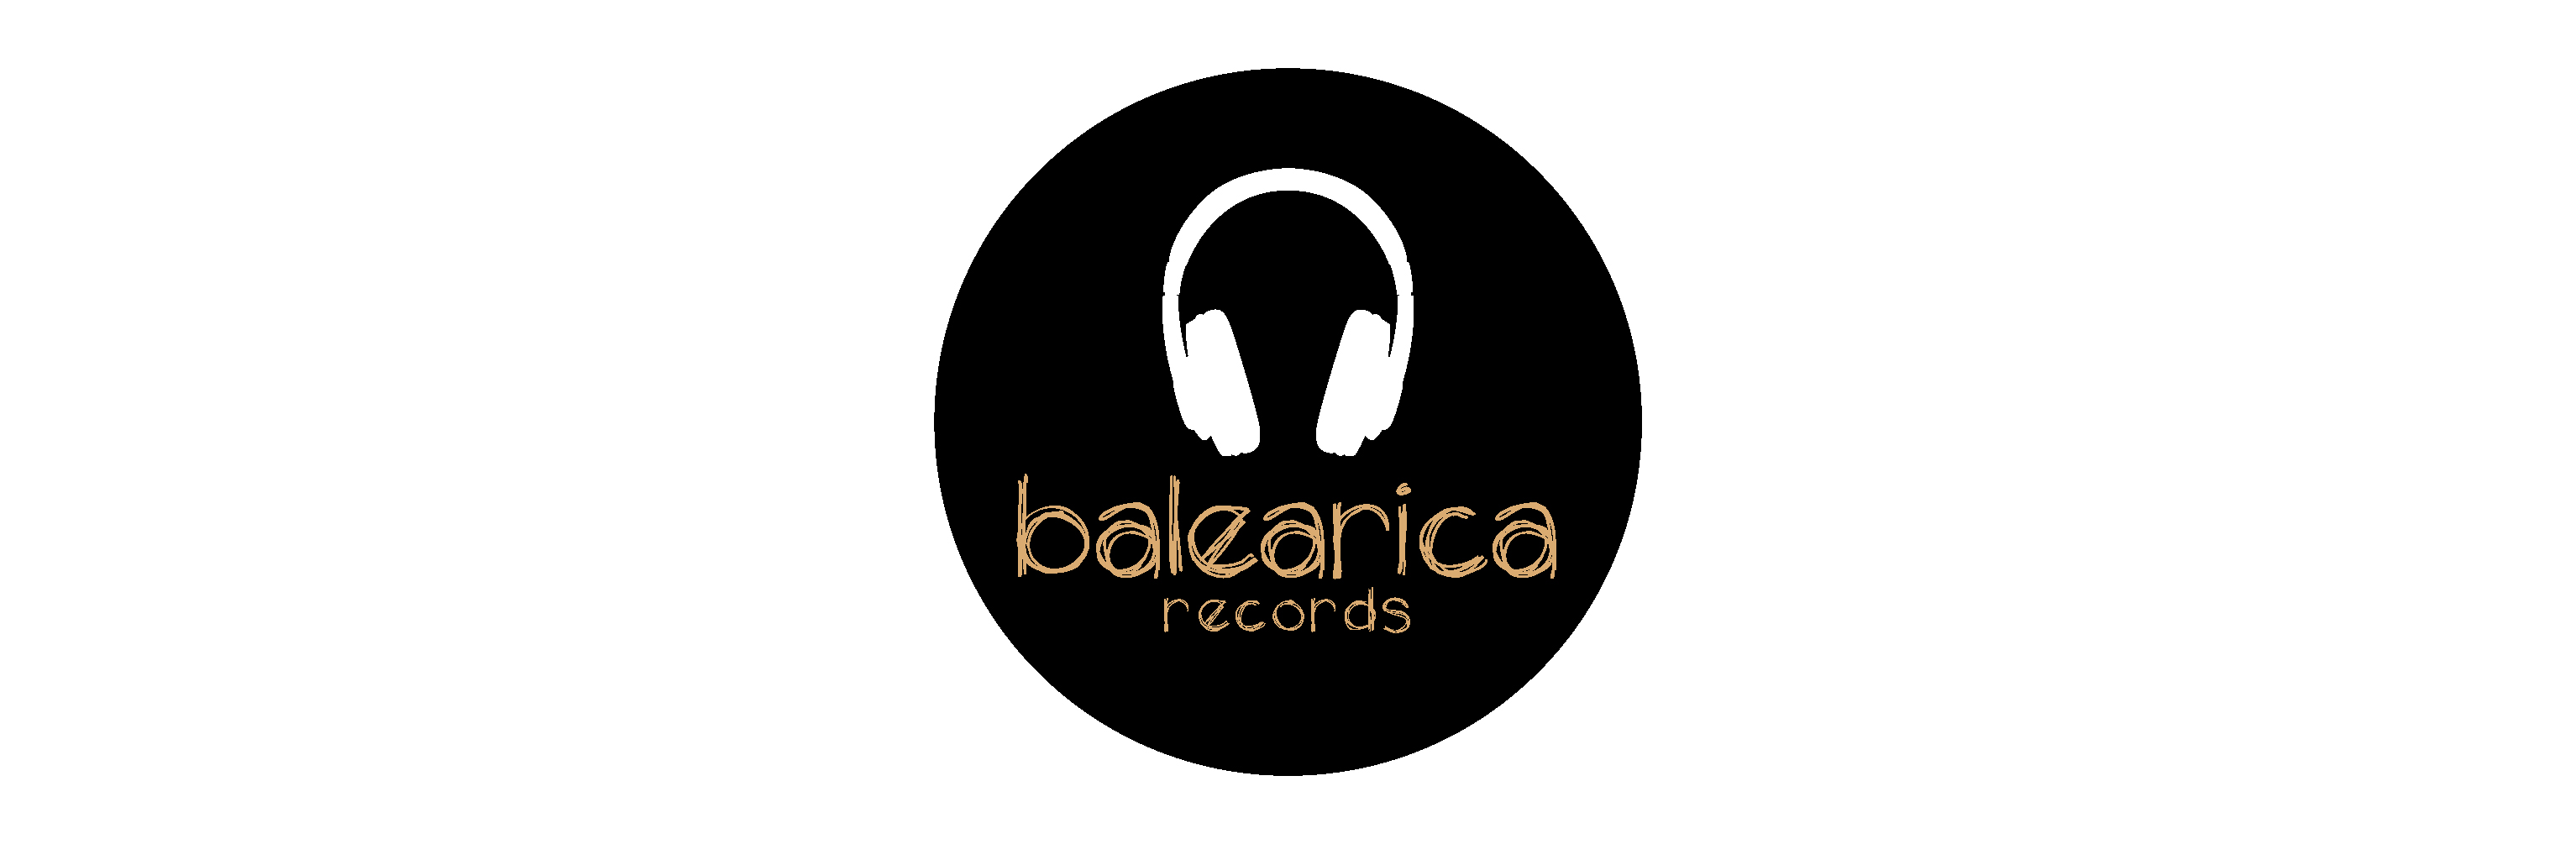 balearica records